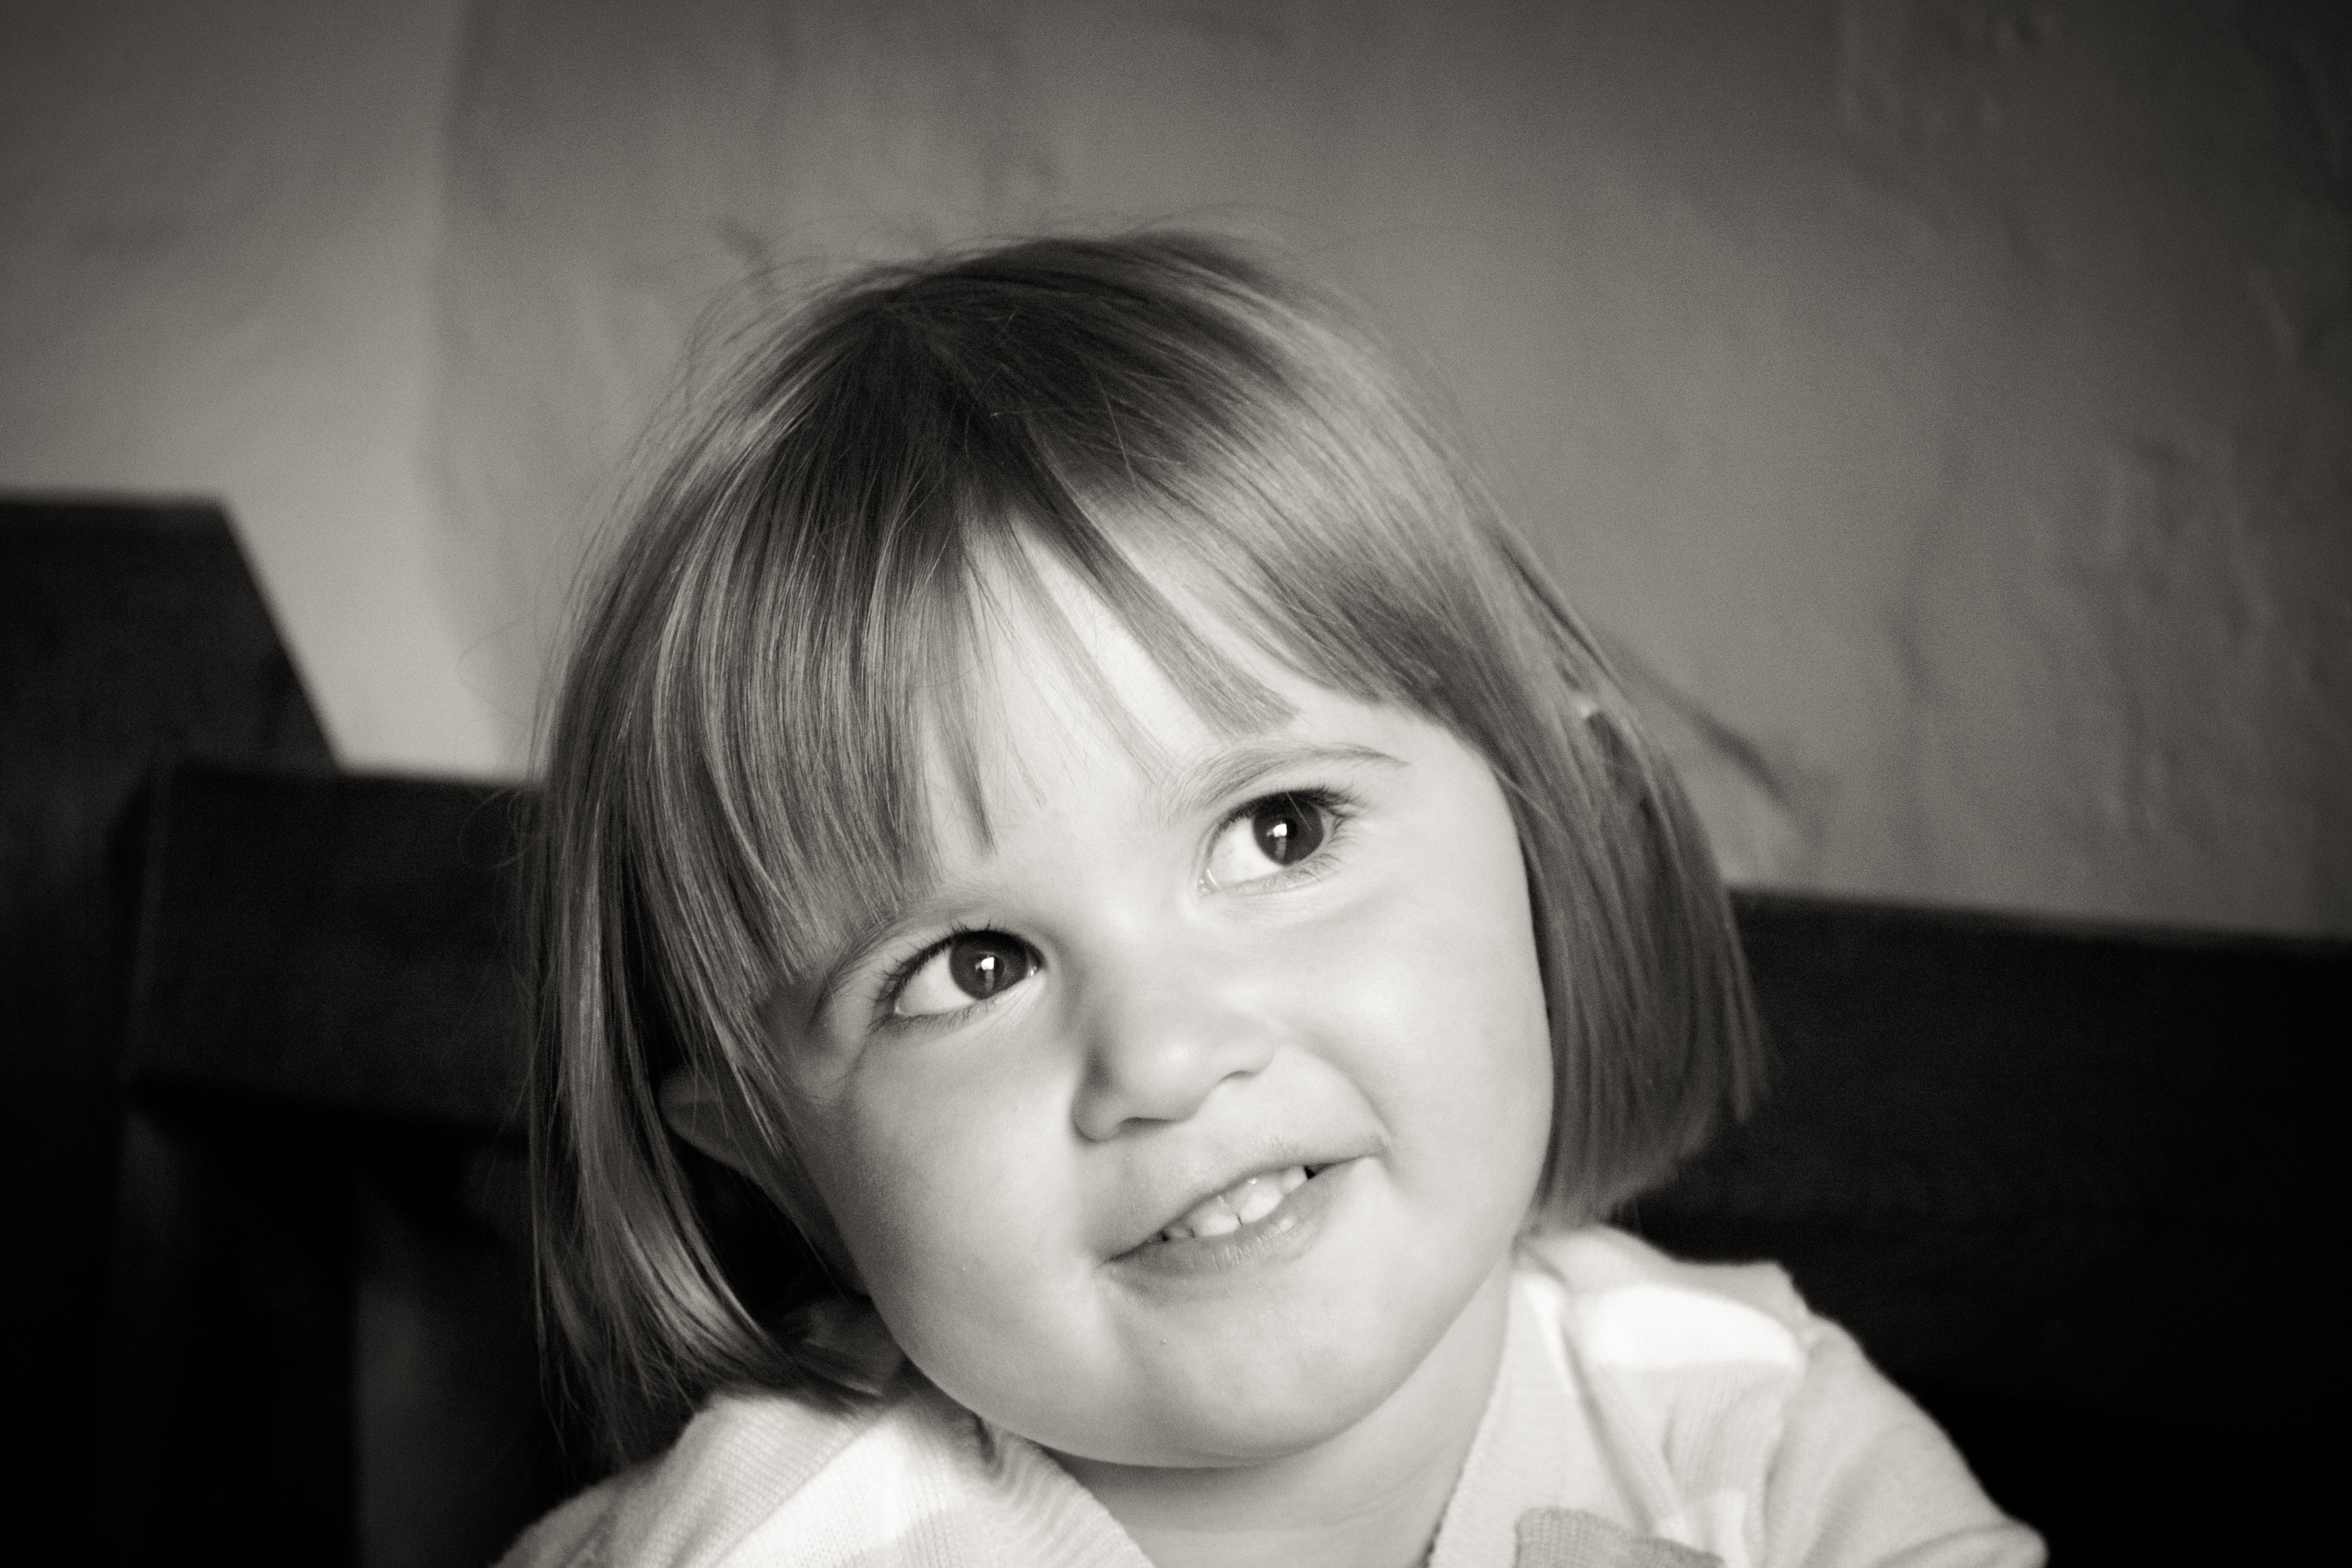 Portrait of Smiling Girl With Short Hair in Grayscale Photography, Baby, Young, Toddler, Smile, HQ Photo